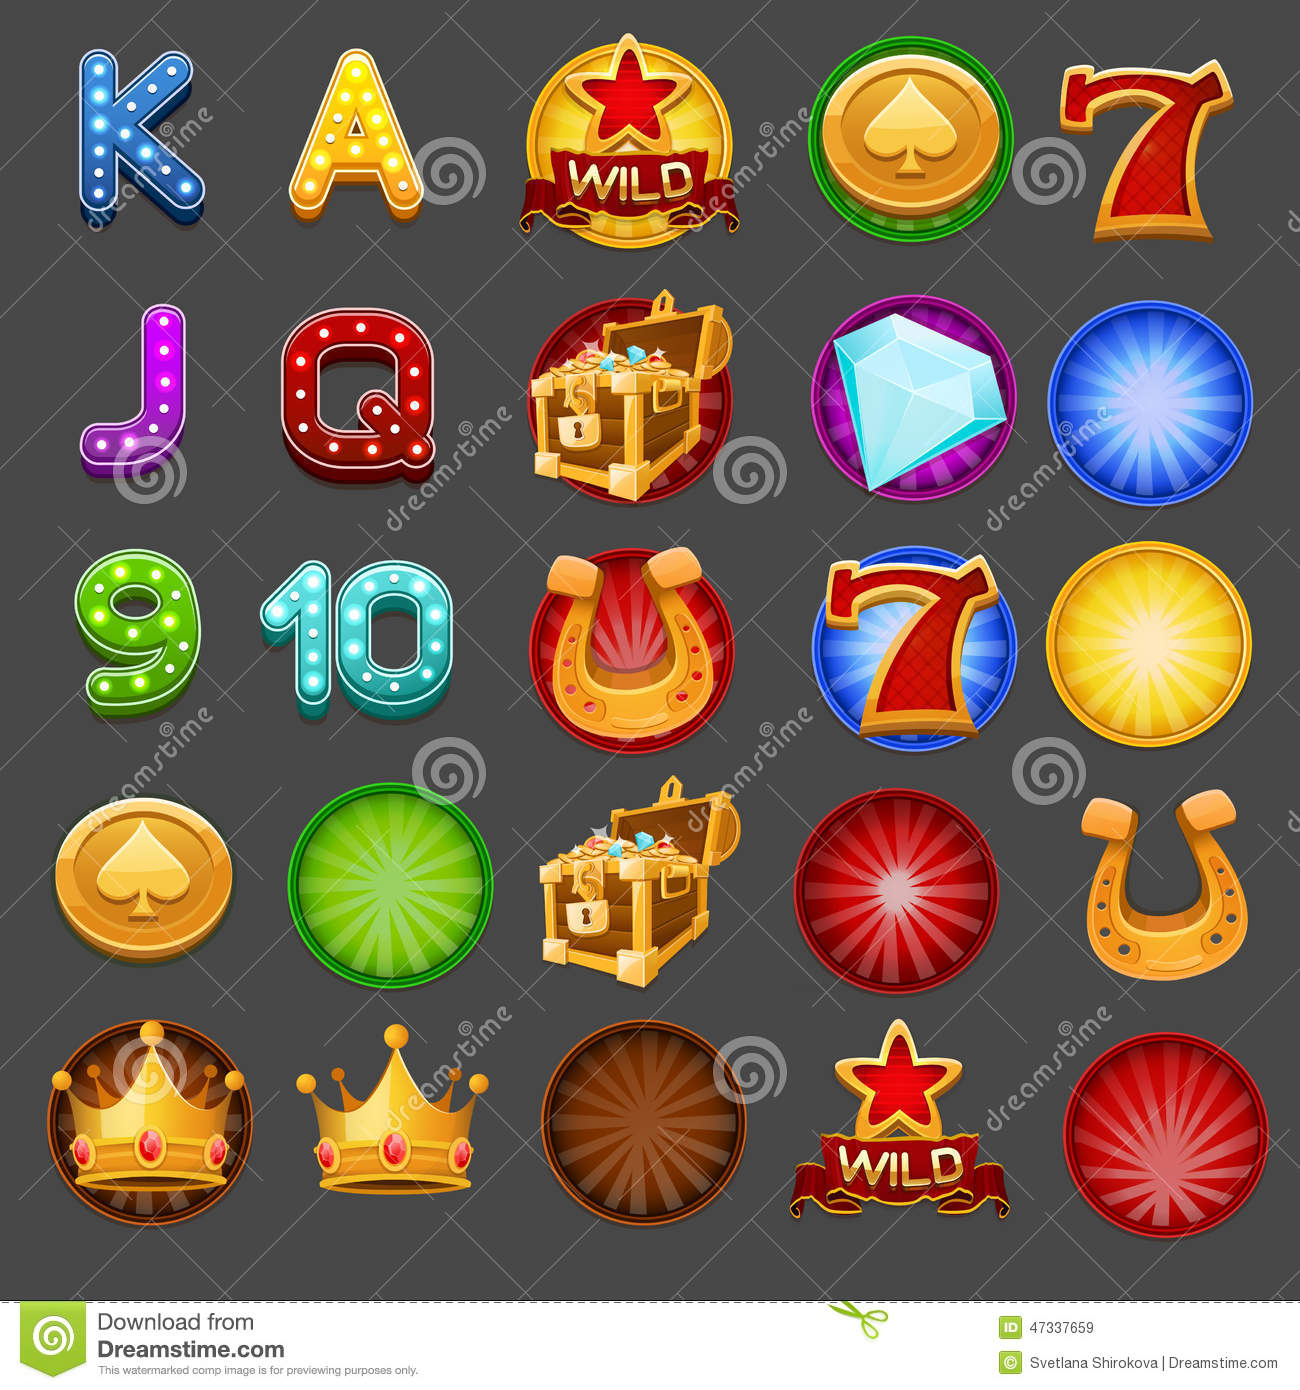 All free slots games with Wild Symbols - 7